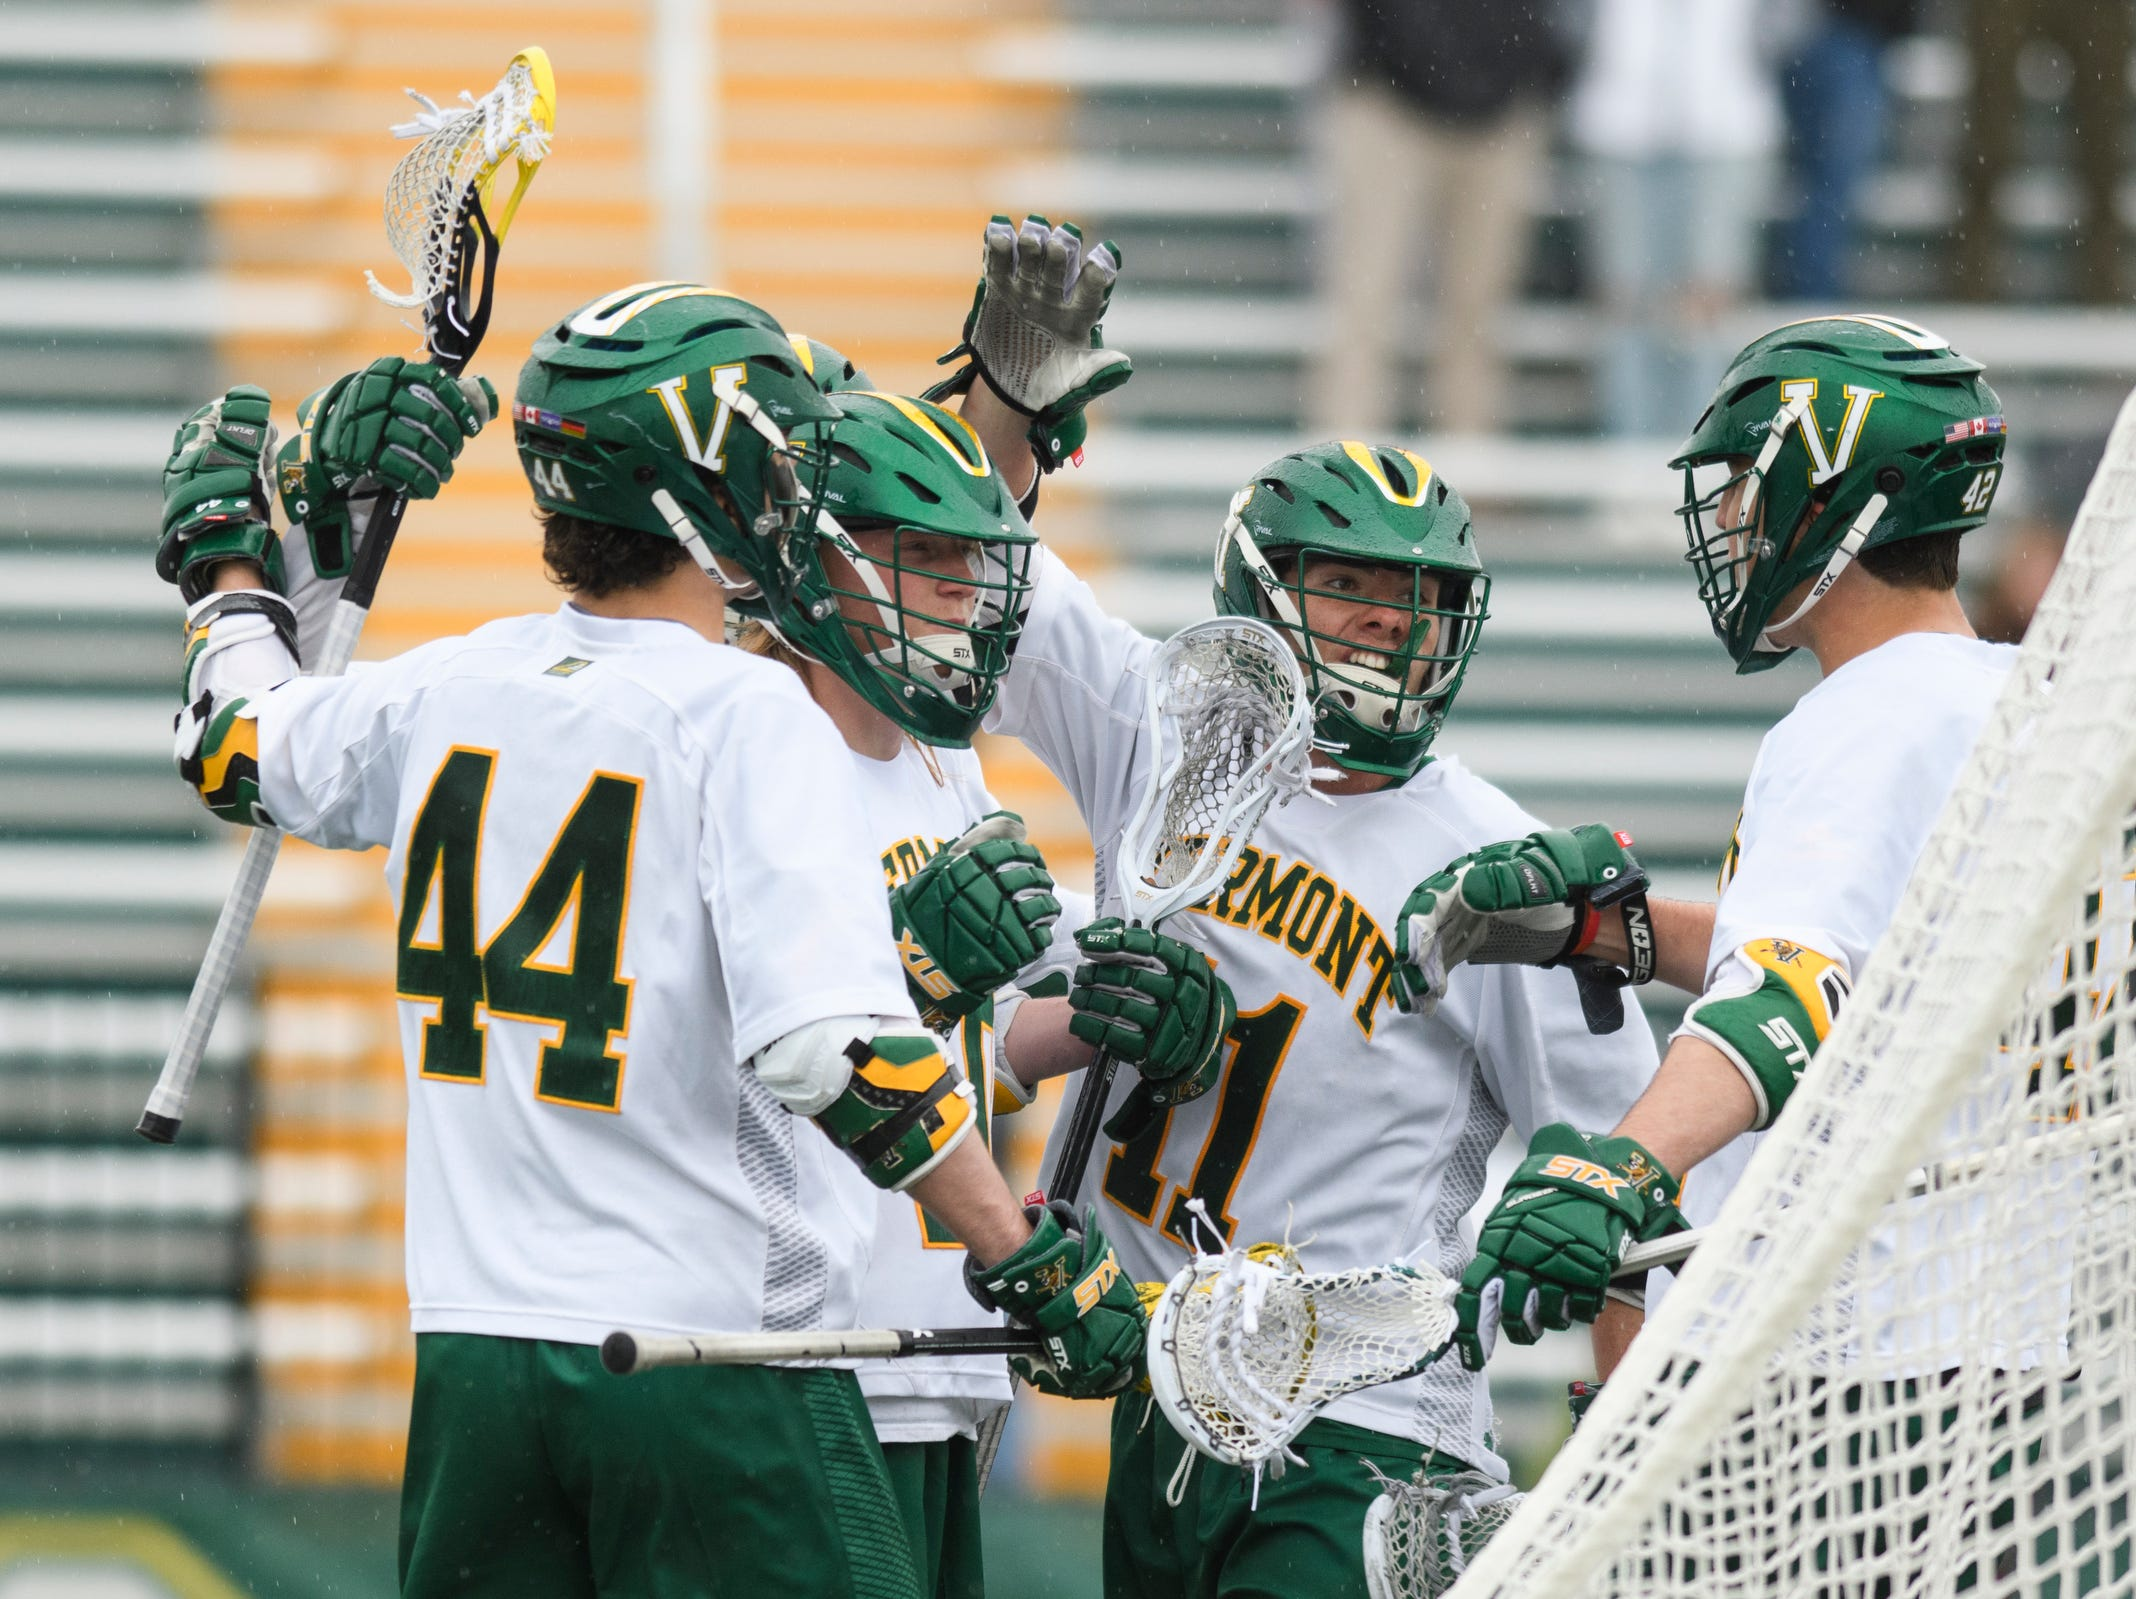 Vermont celebrates a goal during the men's lacrosse game between the Stony Brook Sea Wolves and the Vermont Catamounts at Virtue Field on Saturday afternoon April 20, 2019 in Burlington, Vermont.